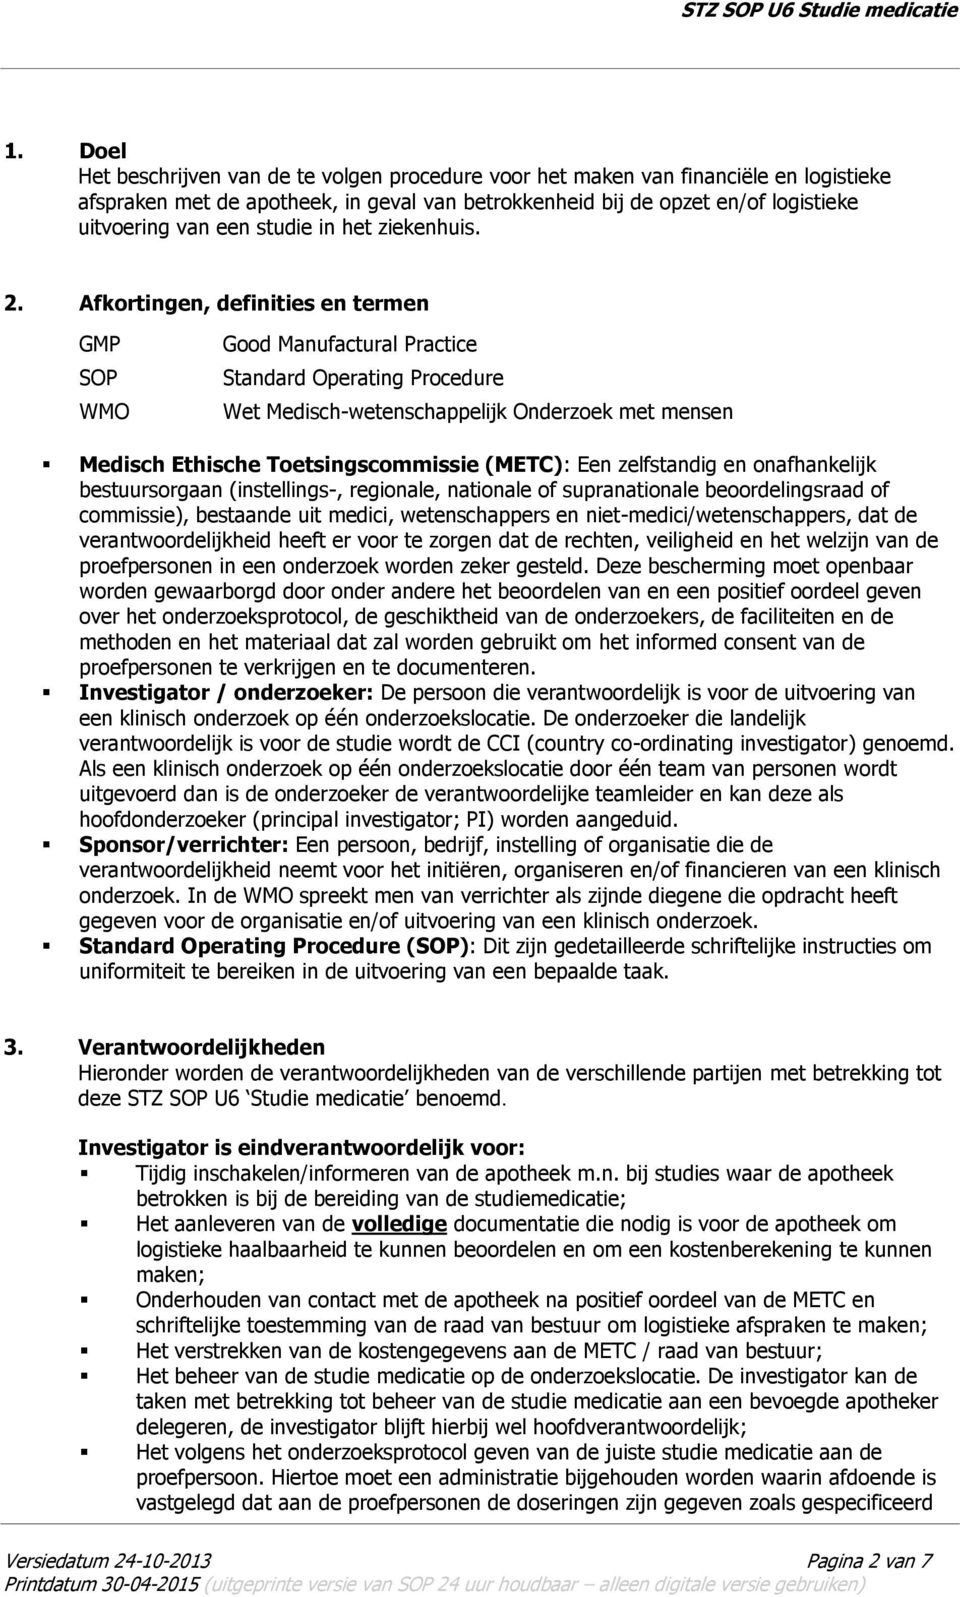 Afkortingen, definities en termen GMP SOP WMO Good Manufactural Practice Standard Operating Procedure Wet Medisch-wetenschappelijk Onderzoek met mensen Medisch Ethische Toetsingscommissie (METC): Een